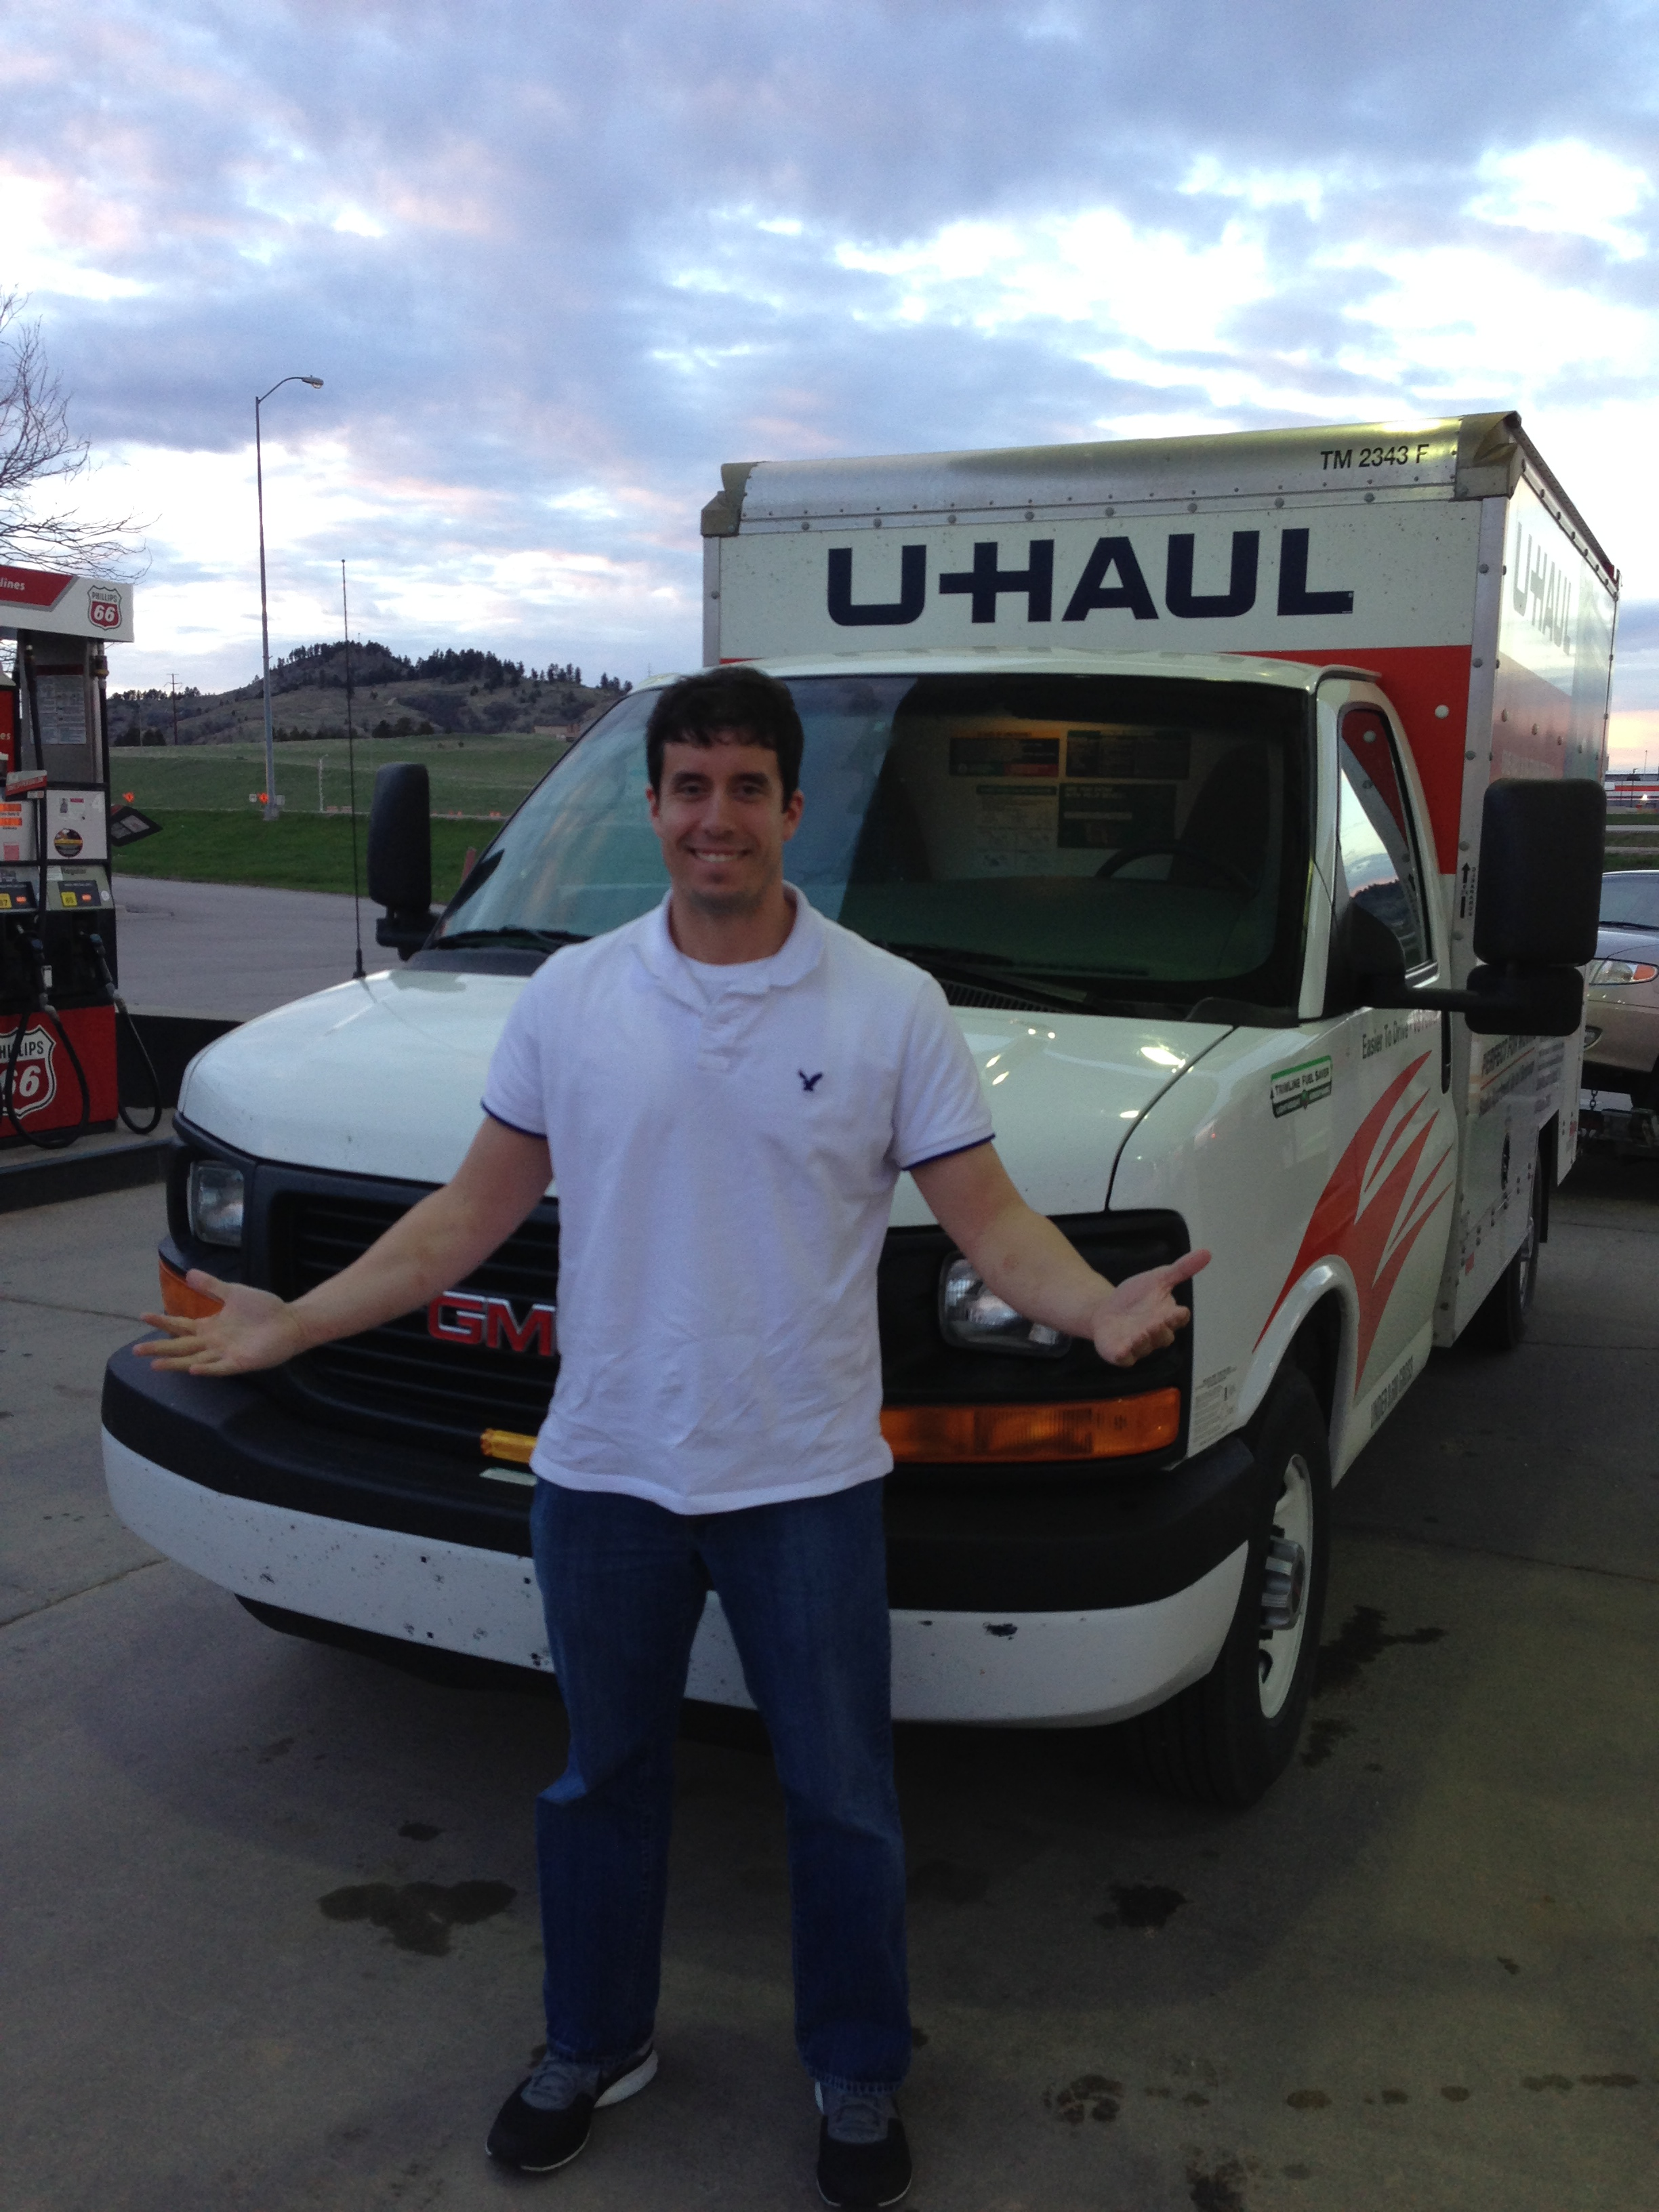 I was happy when we parked our U-Haul in Spearfish, South Dakota, this evening.